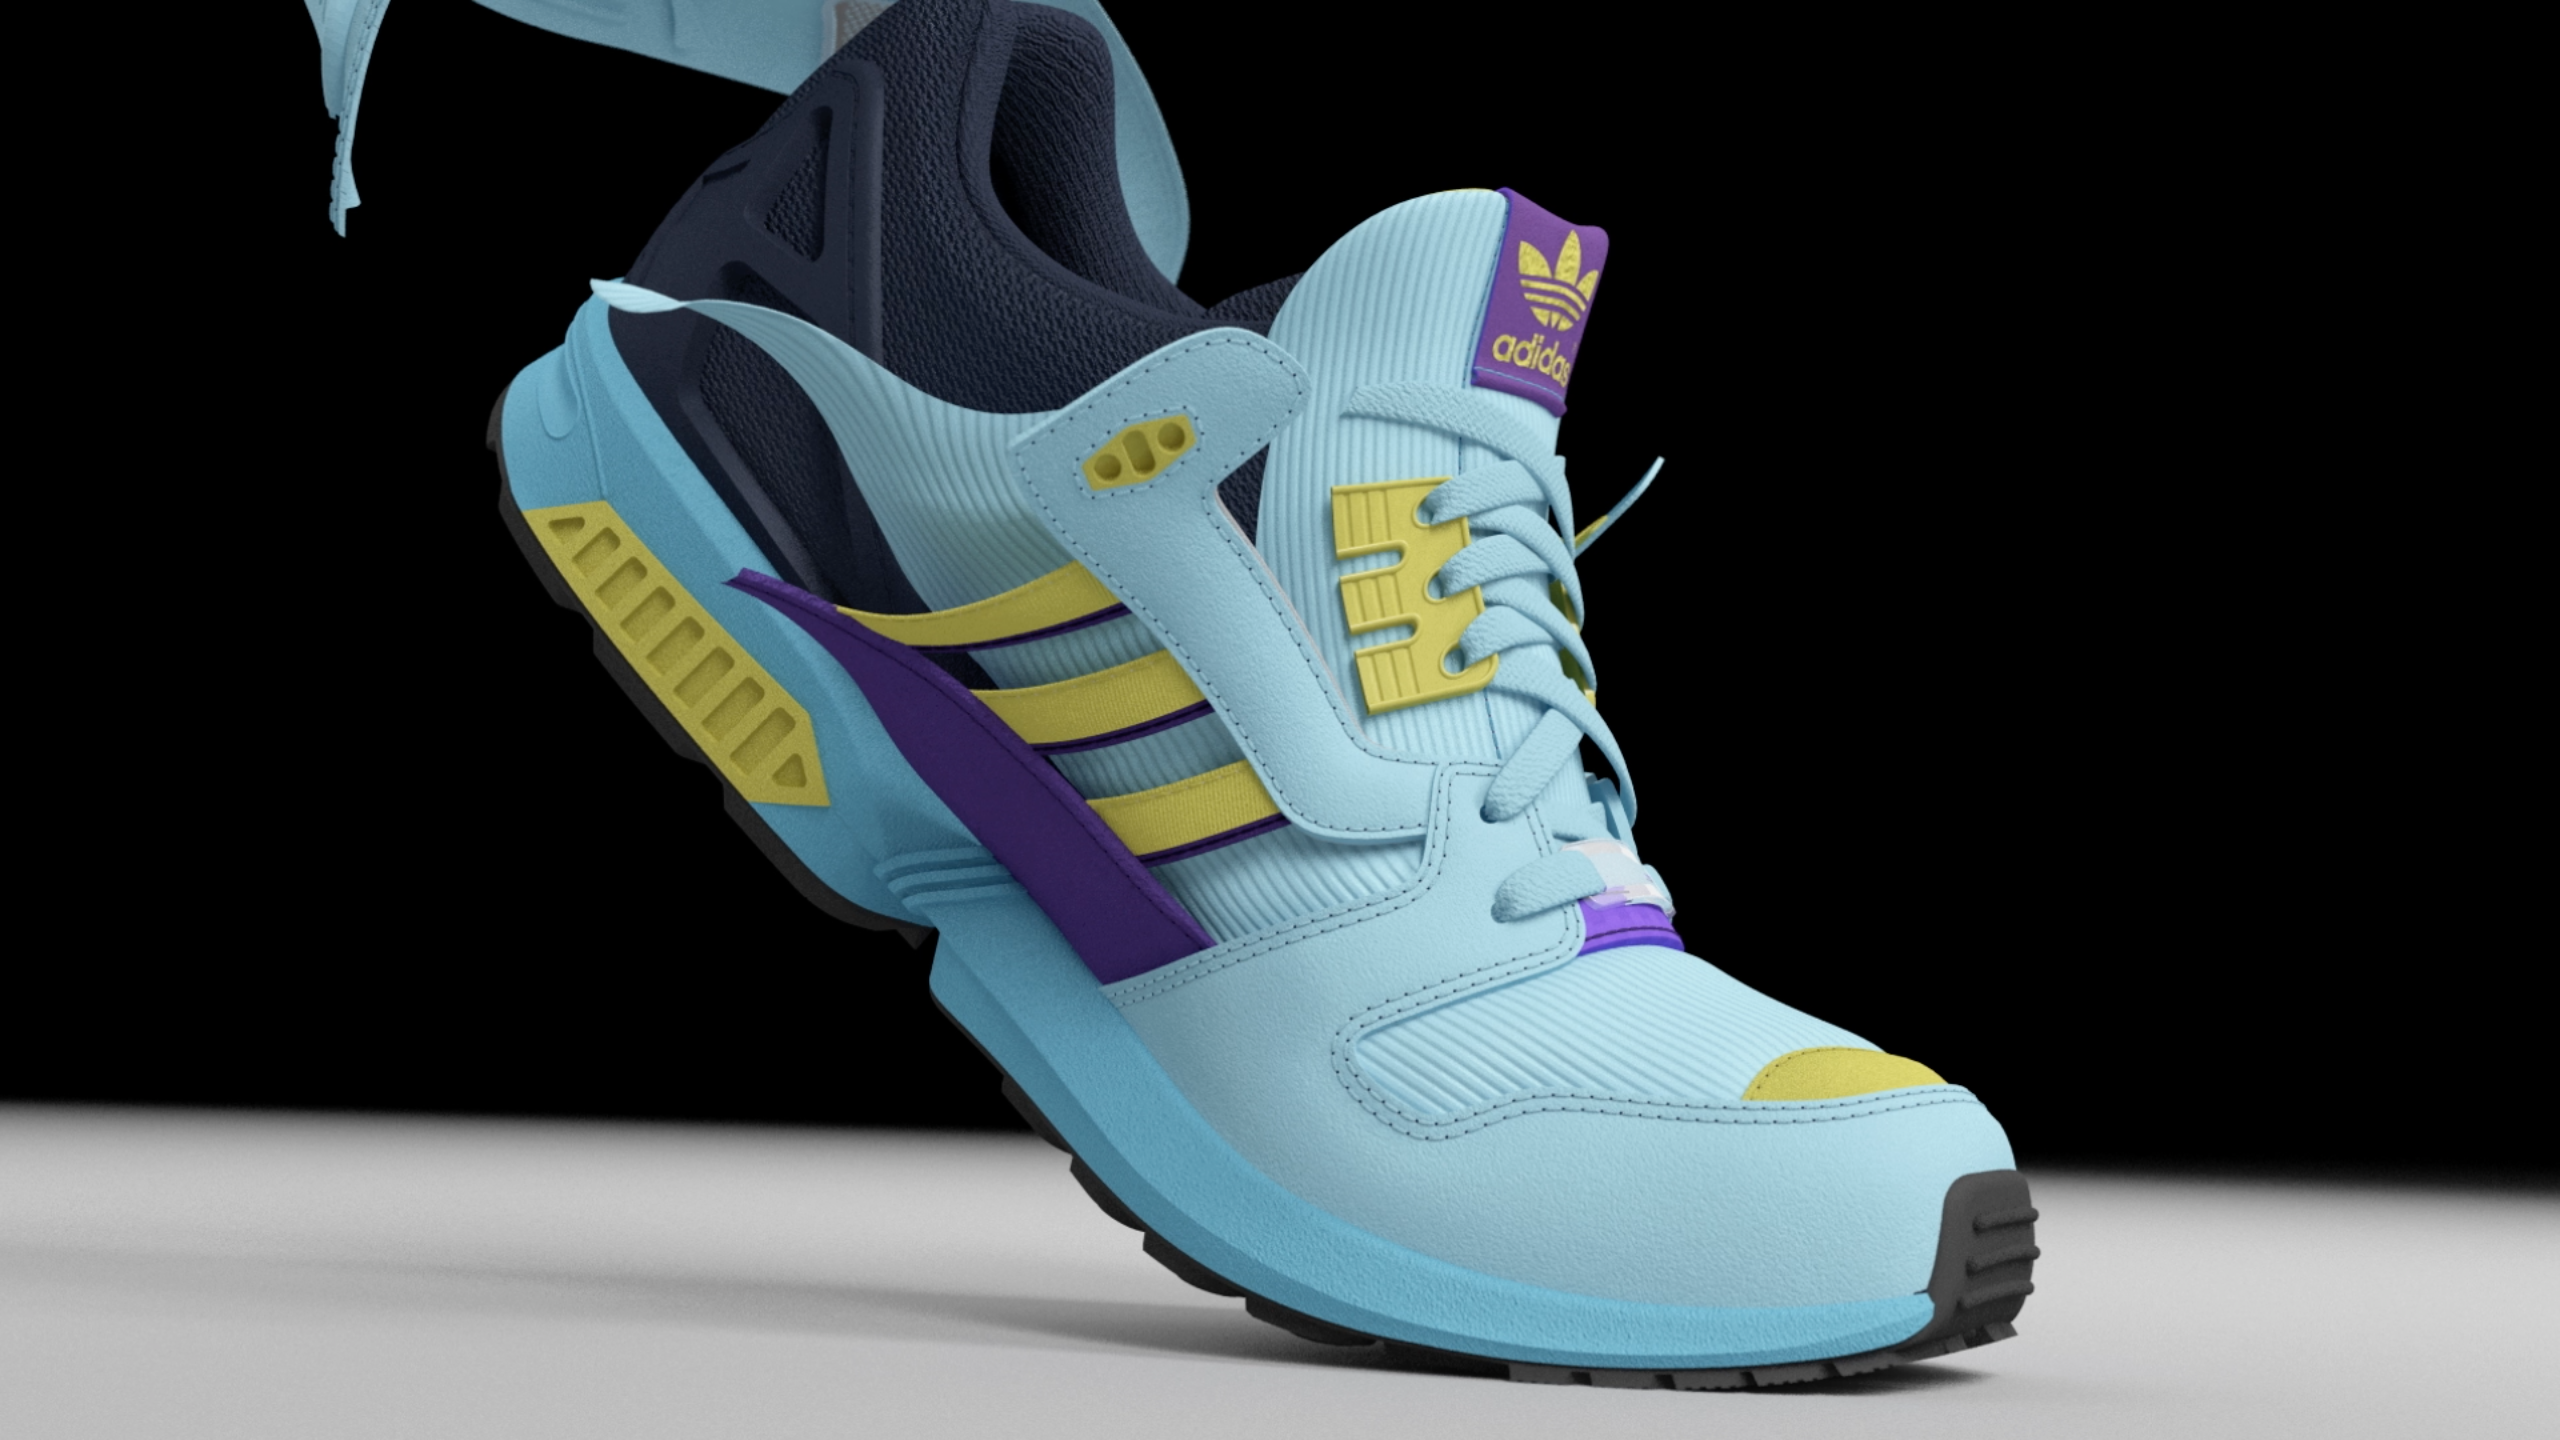 c041f3b68 ... ZX FLUX at adidas Originals retailers in the coming weeks.  ZXFLUX-VIDEO STILL-2 ...